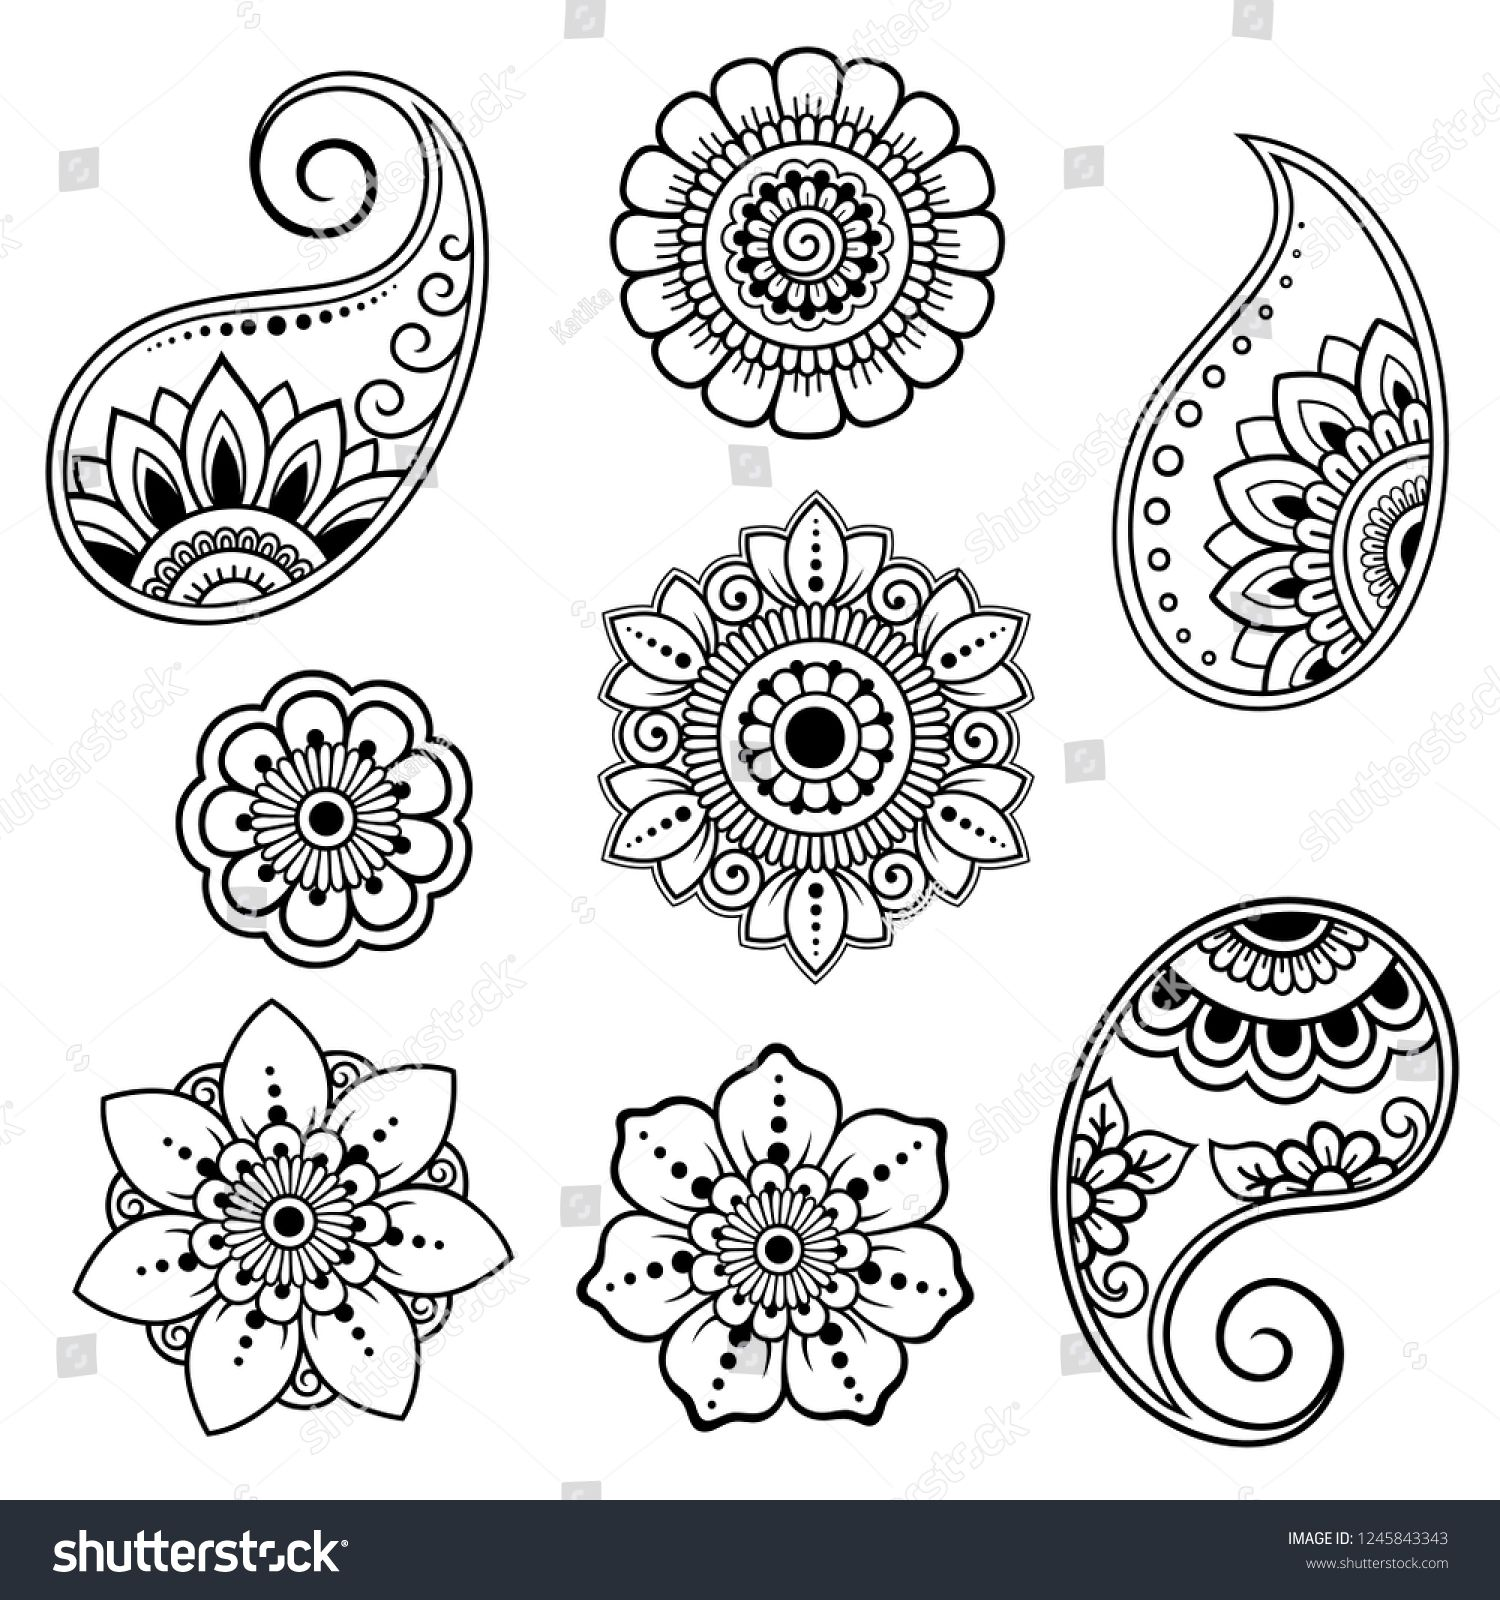 Set Mehndi Flower Pattern Henna Drawing Stock Vector (Royalty Free) 1245843343